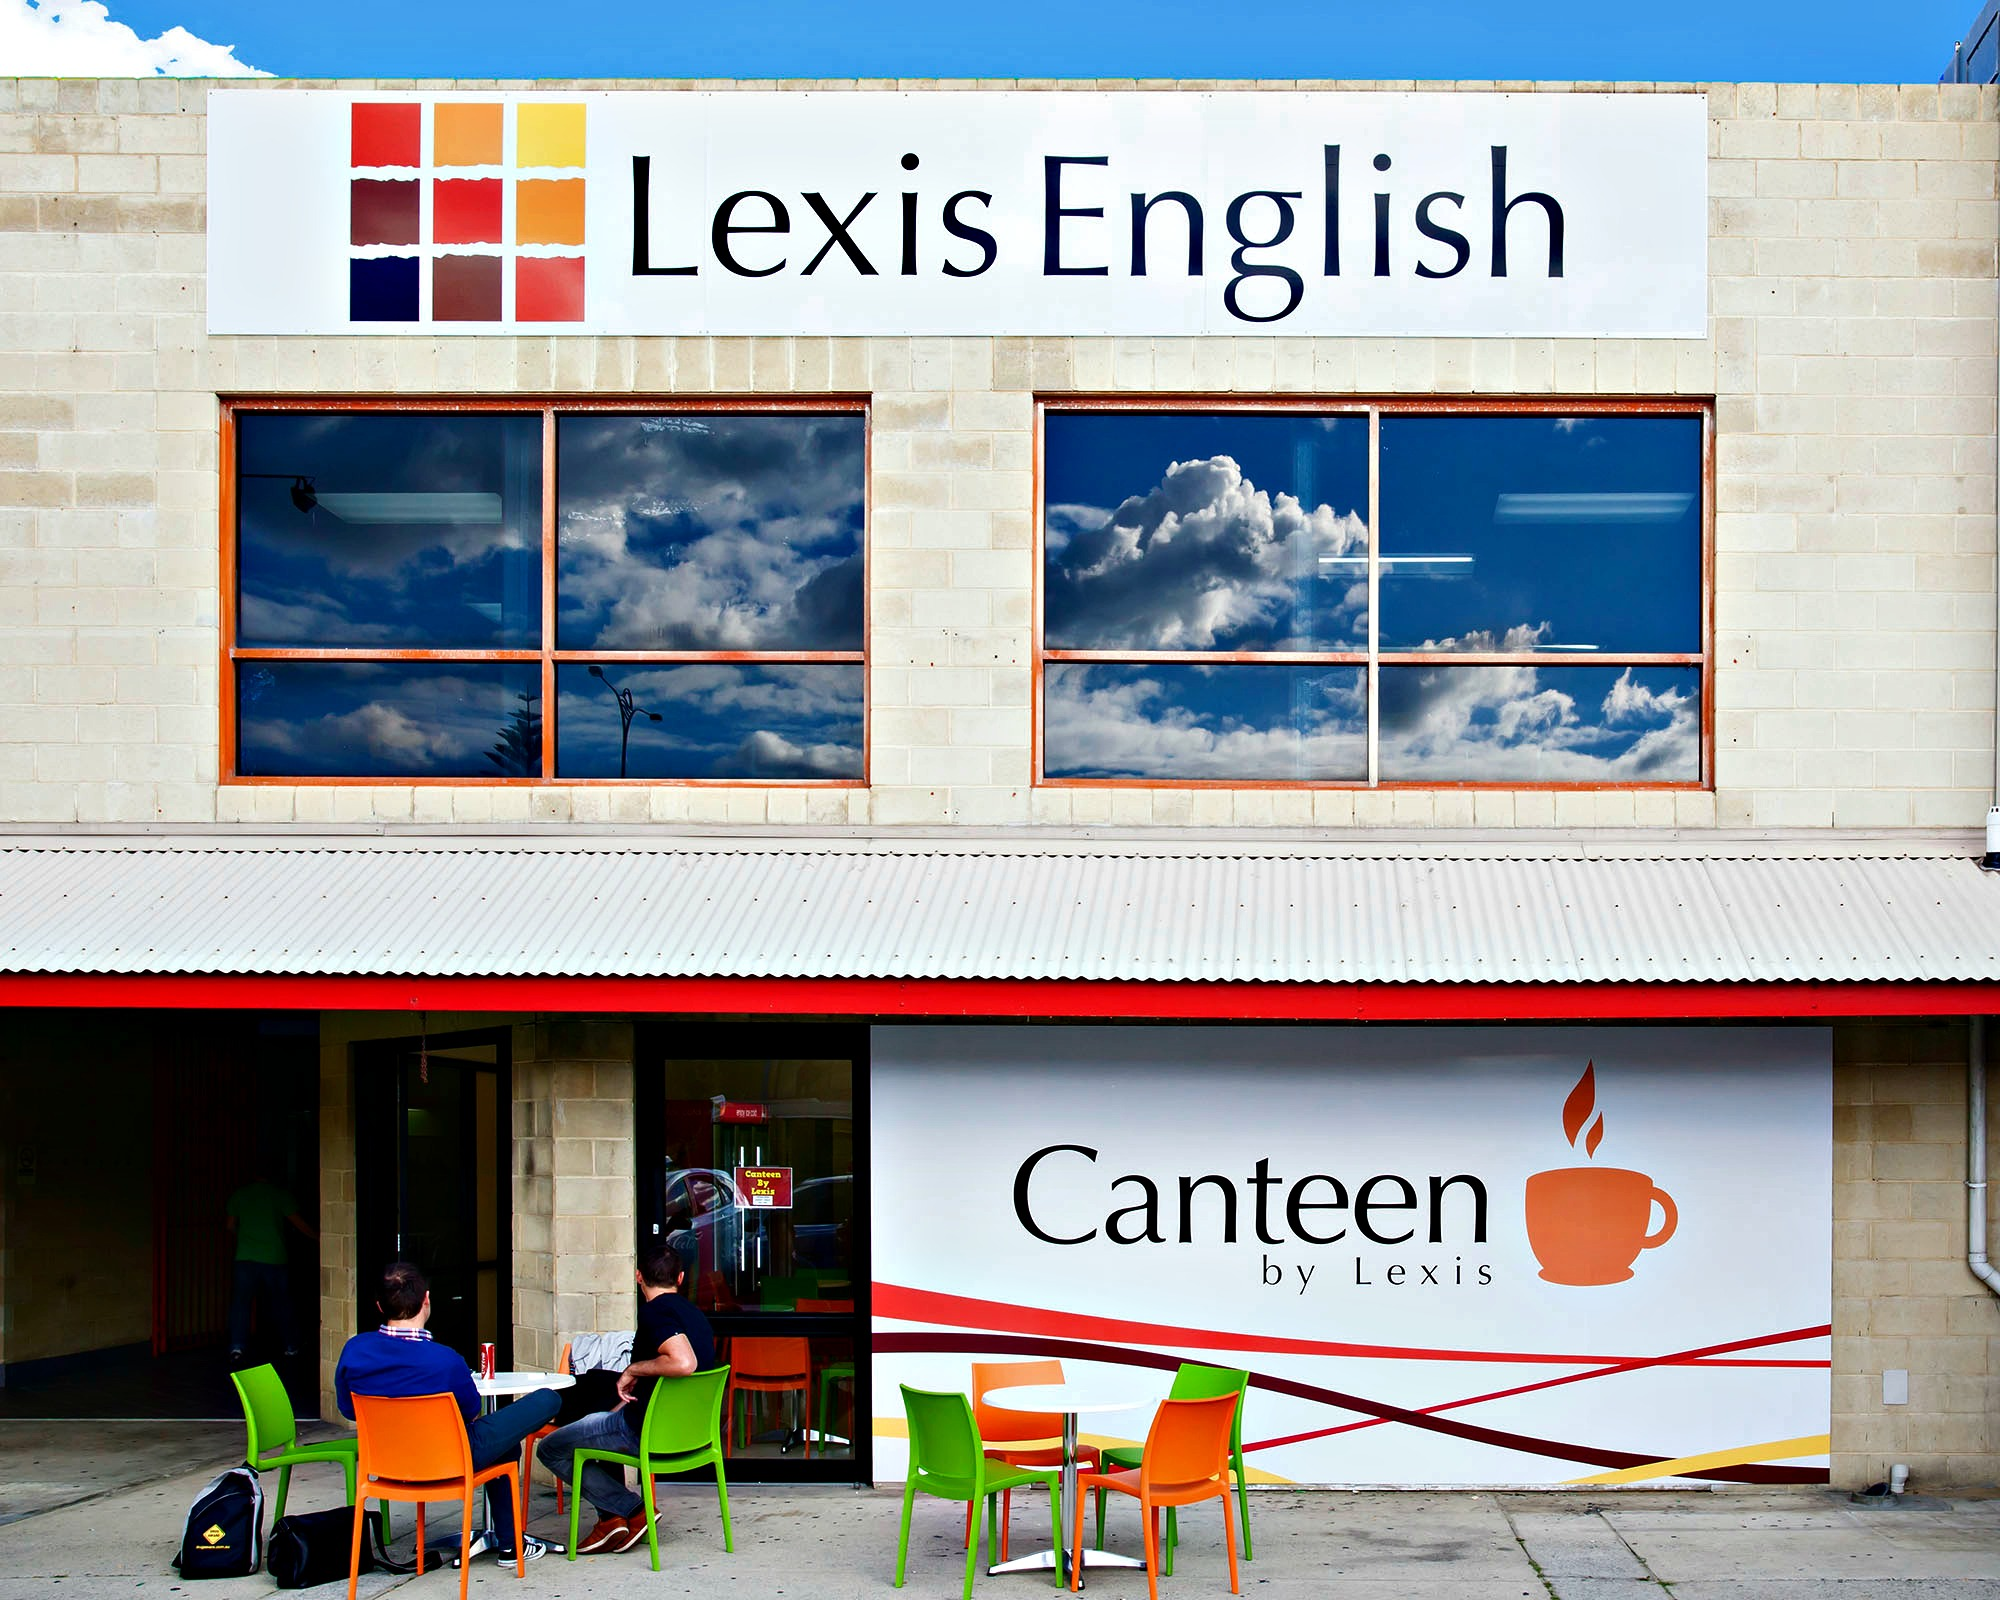 Lexis English Perth campus